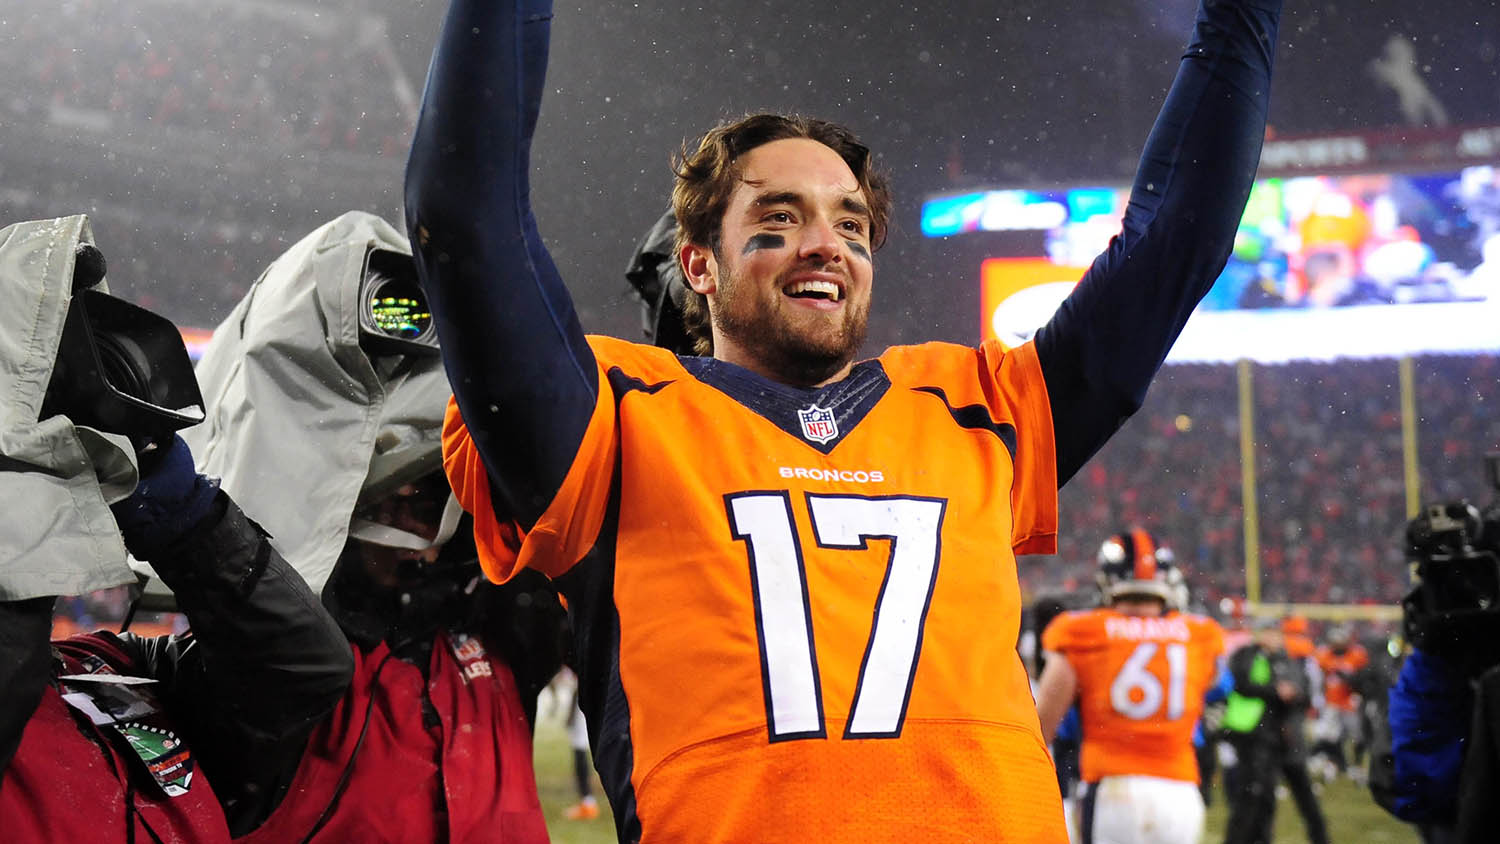 NFL Inside Slant: Osweiler is Denver's best option